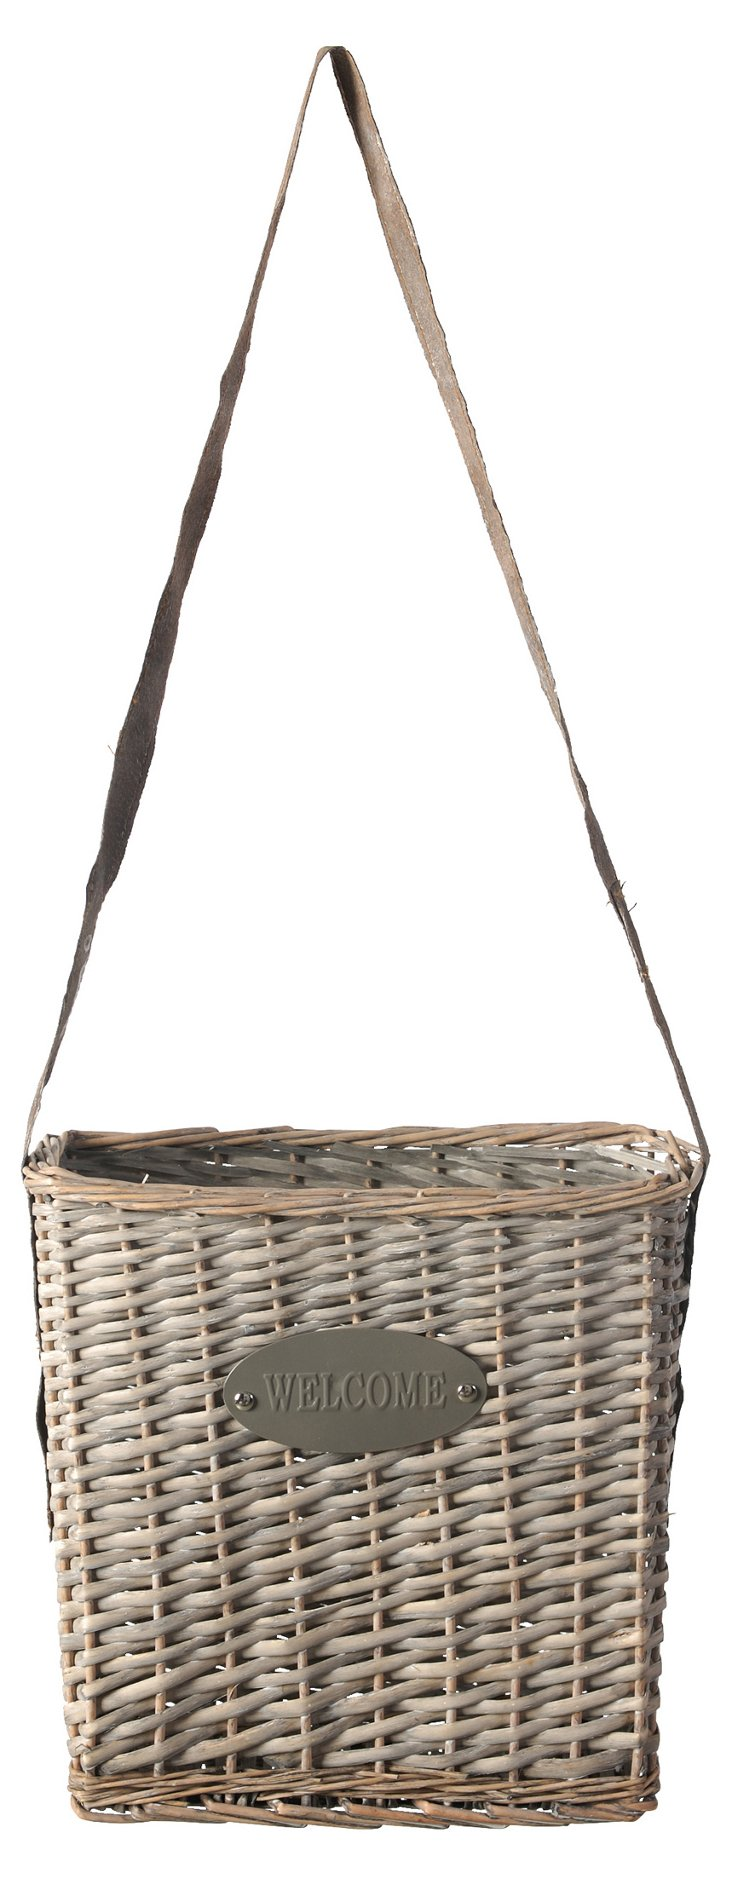 Hanging Willow Welcome Basket